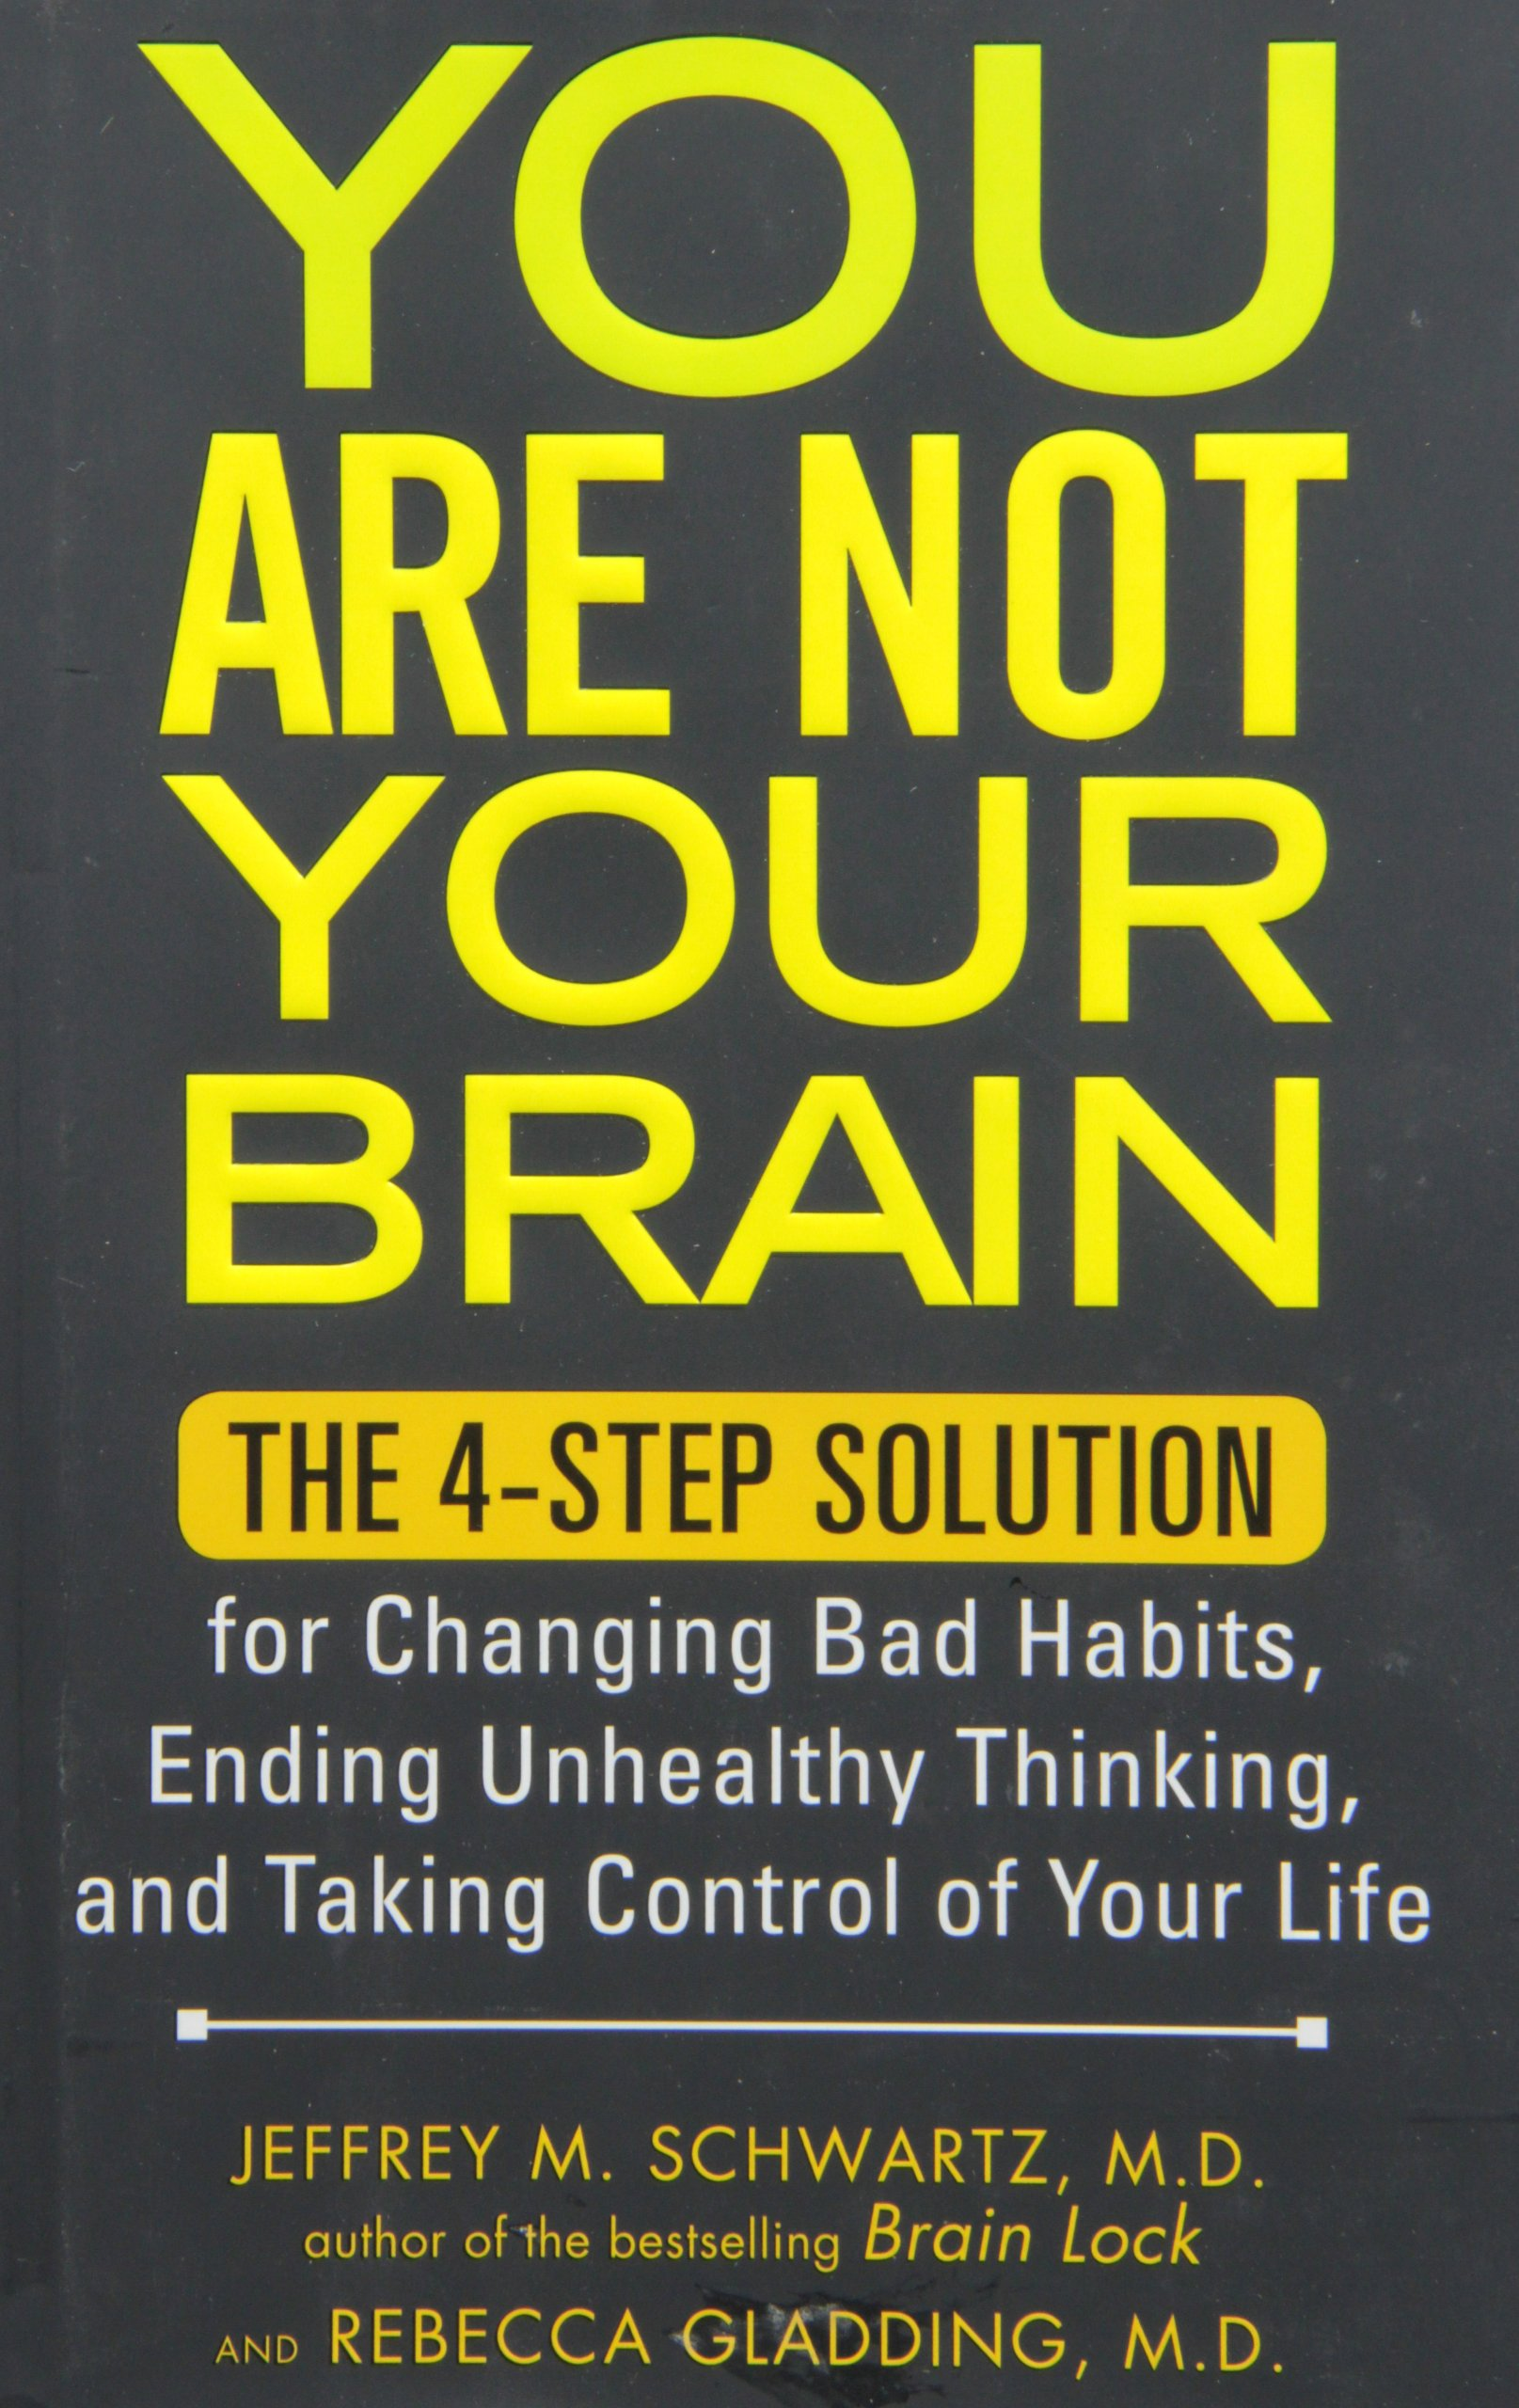 You Are Not Your Brain: The 4-Step Solution for Changing Bad Habits, Ending Unhealthy Thinking, and Taking Control of Your Life pdf